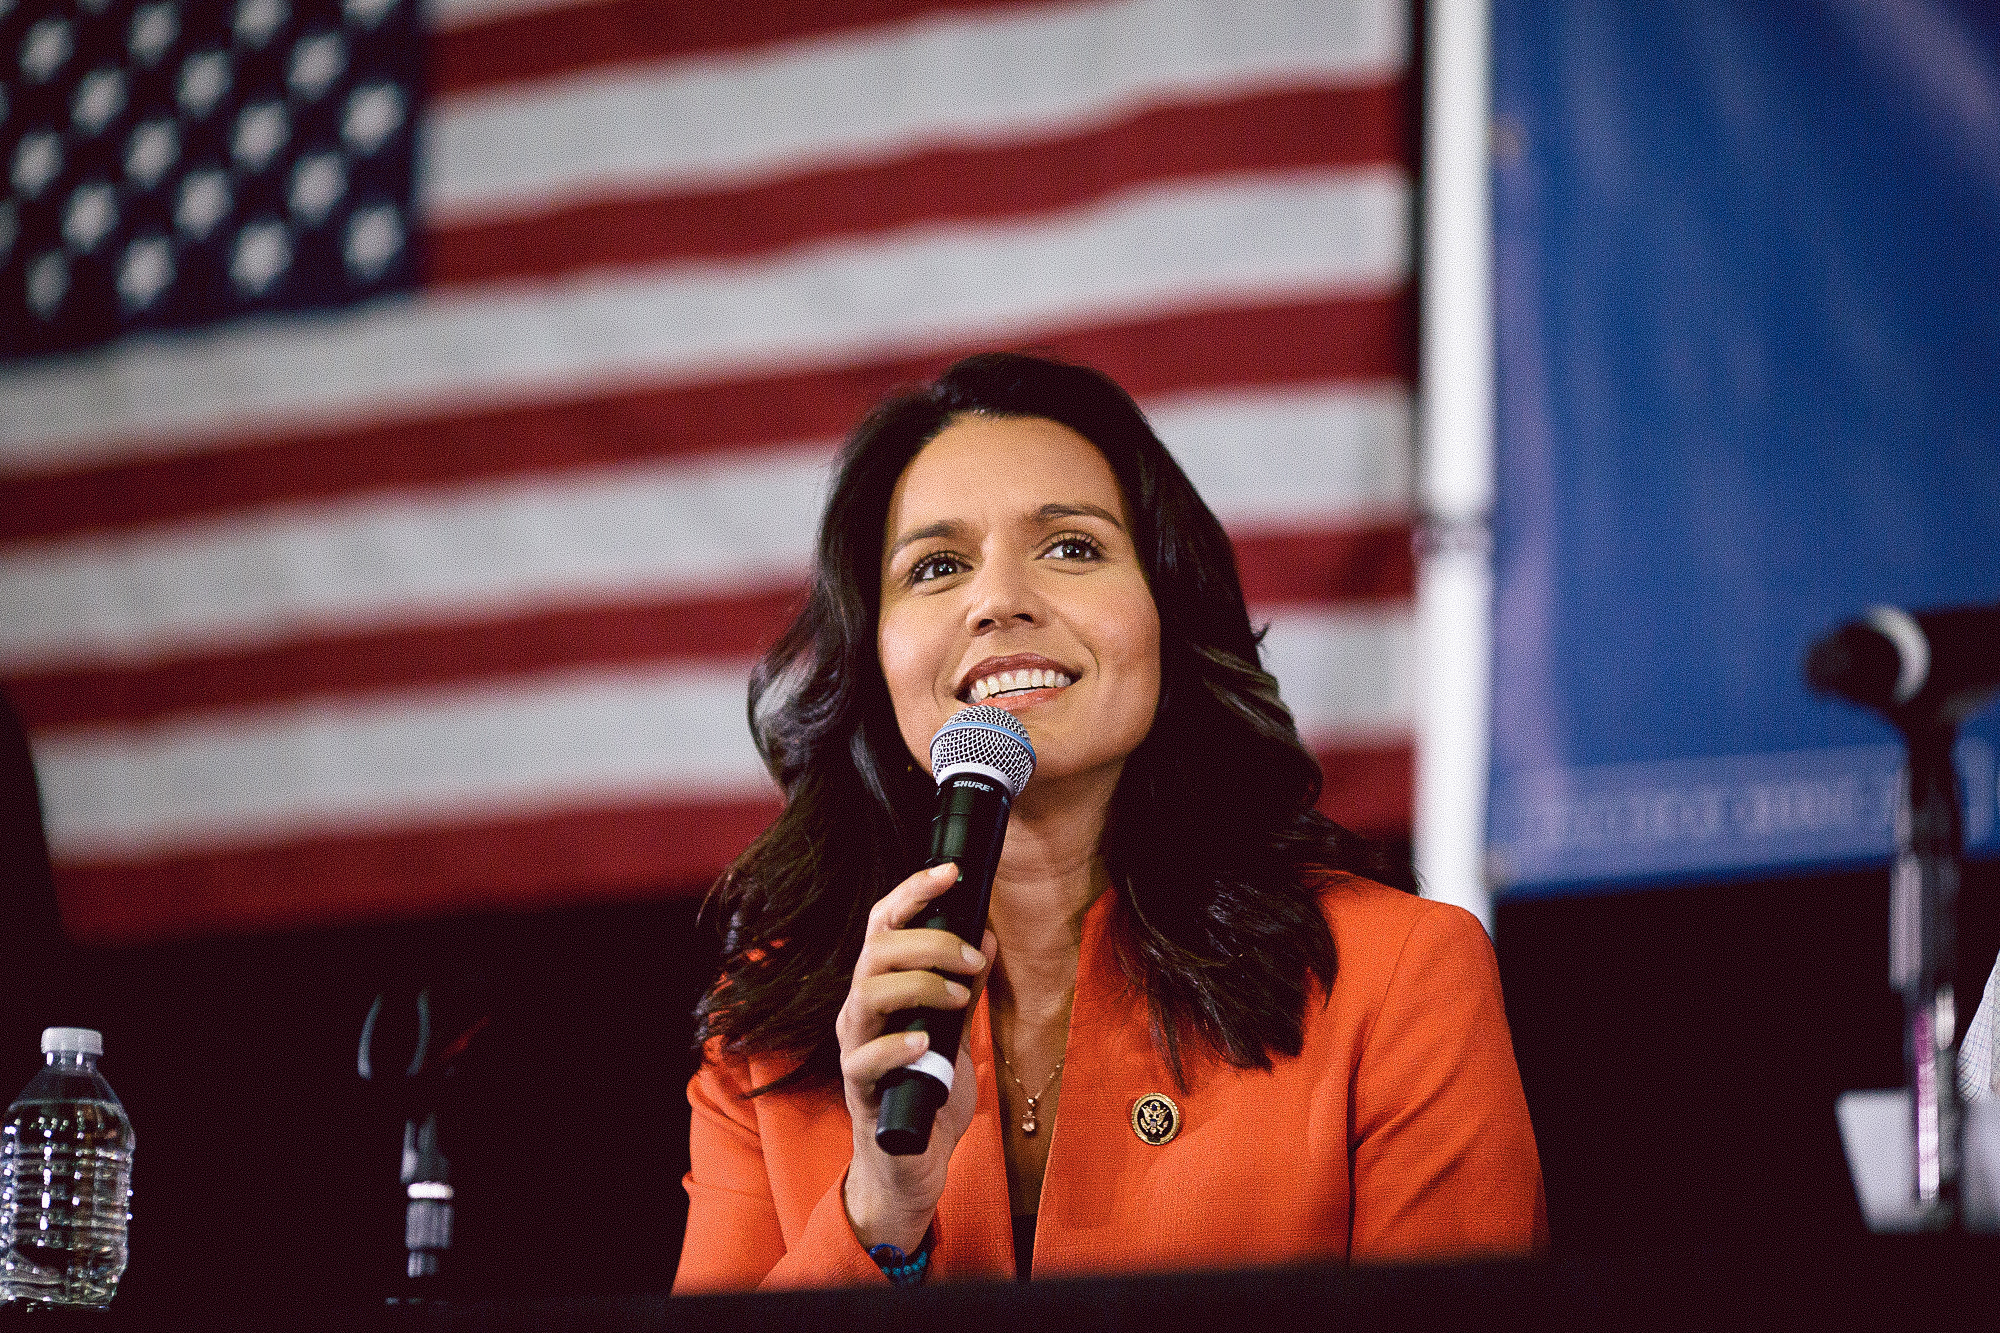 Rep. Gabbard Calls for Limited Tax on Corporate Windfall Profits To Help Small Businesses